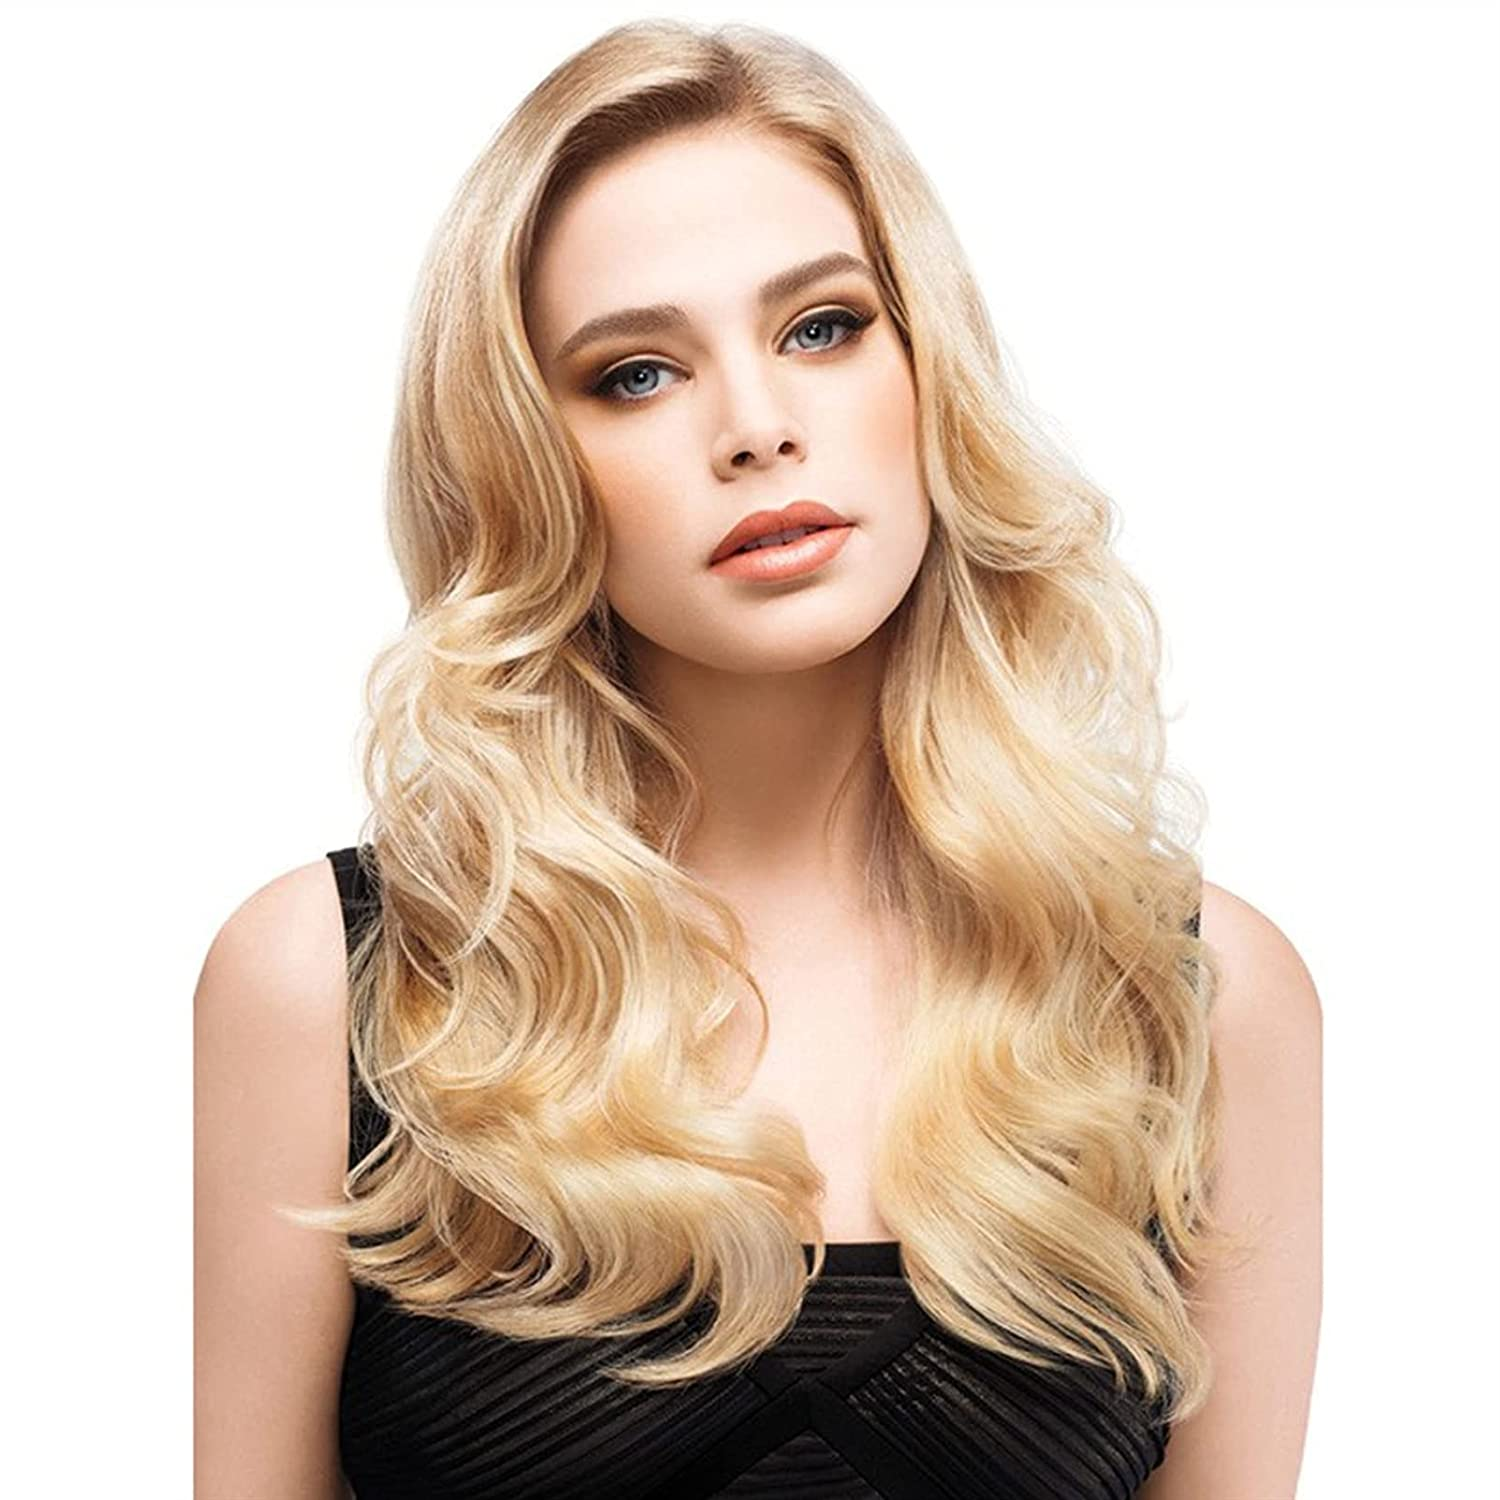 Superior Natural long wavy curly Manufacturer OFFicial shop brown heat-resis high-gloss mixed blonde